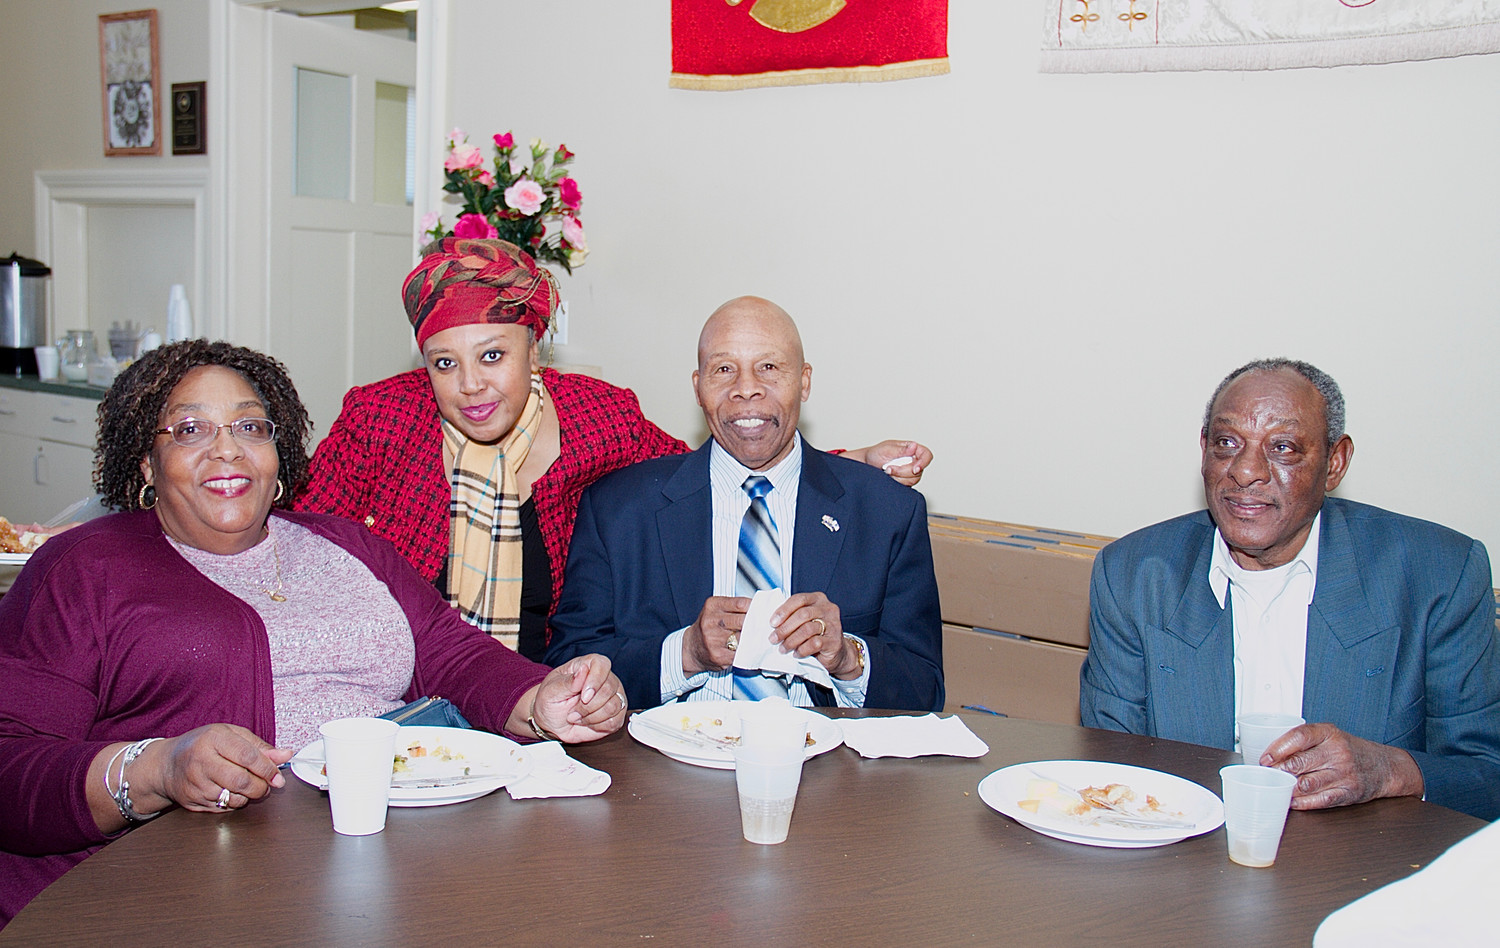 Viola Carter, far left, Denice Evans-Sheppard, Woody Vann,and Jay Green, from Hood AME, at the reception that followed the service.